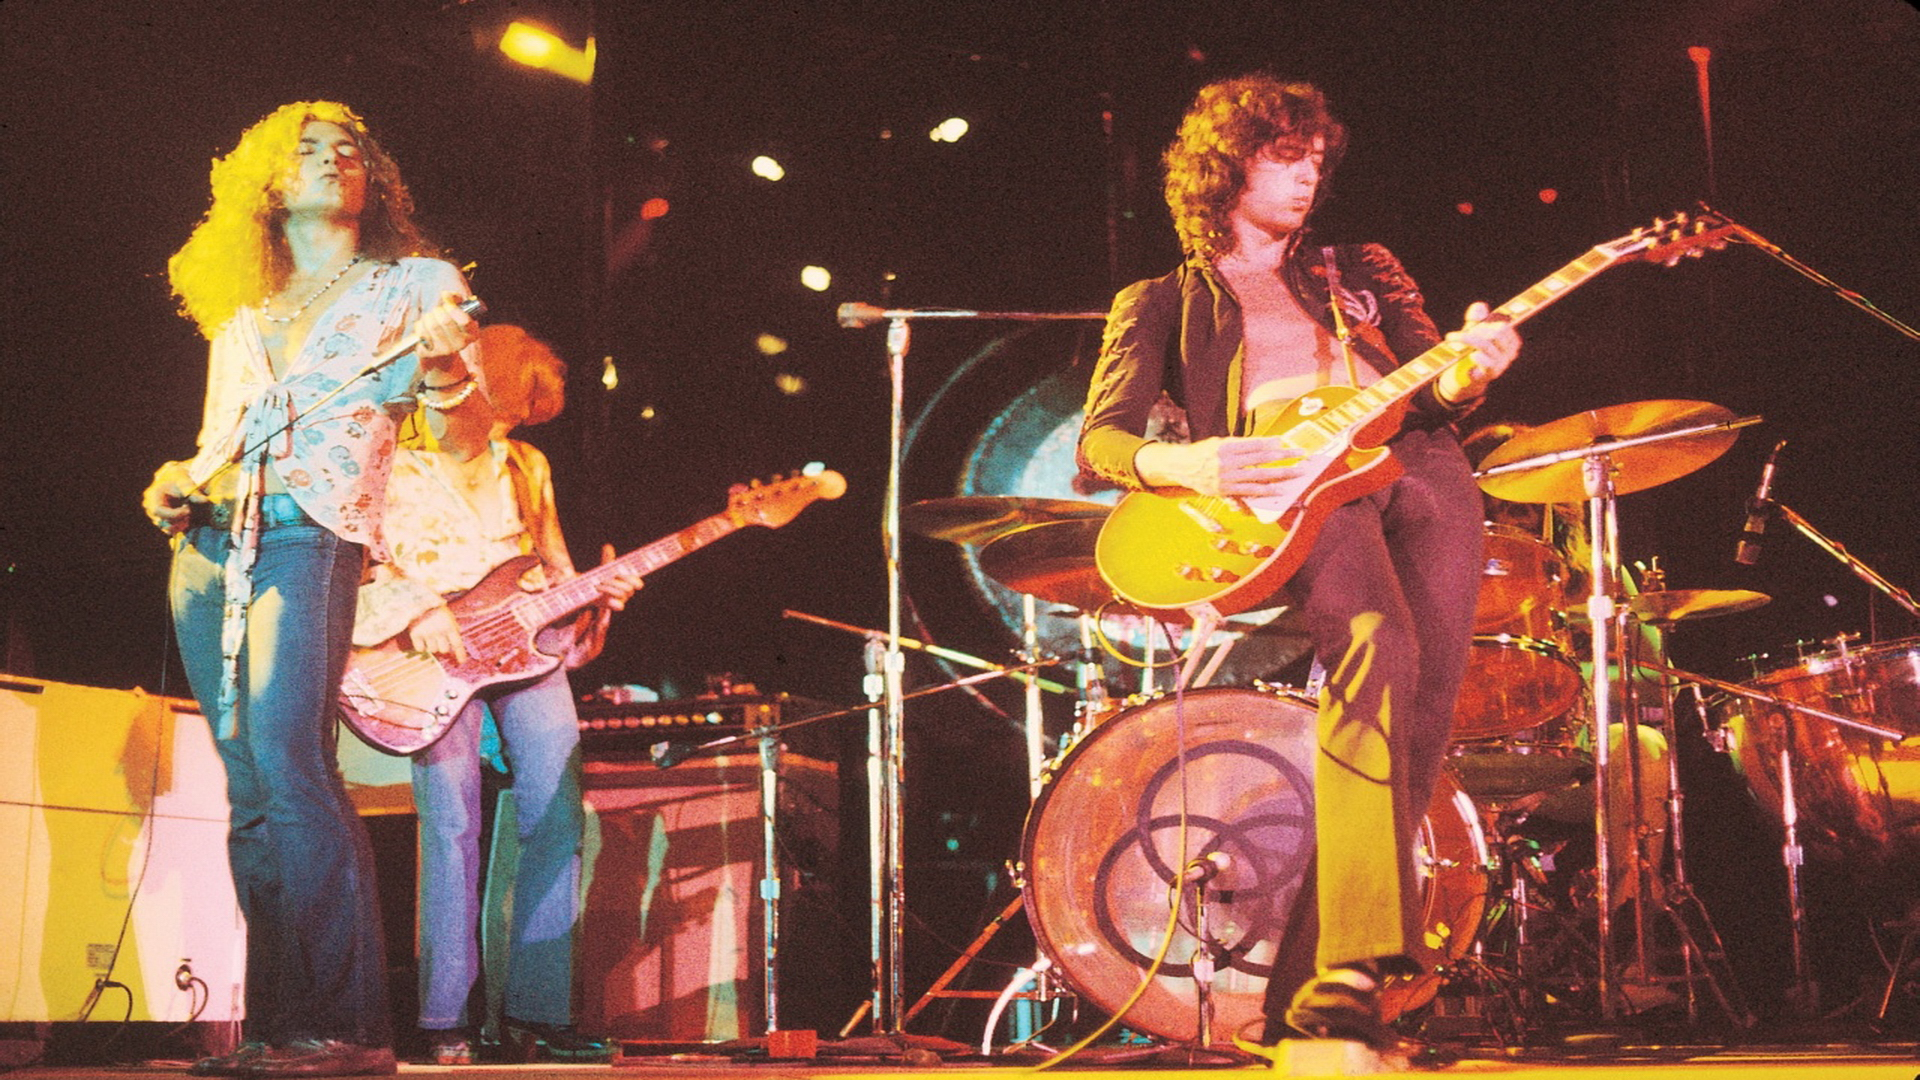 LED-Zeppelin-Led-Zeppelin-HD-Led-Zeppelin-HD-Led-Zeppelin-wallpaper-wpc9206674